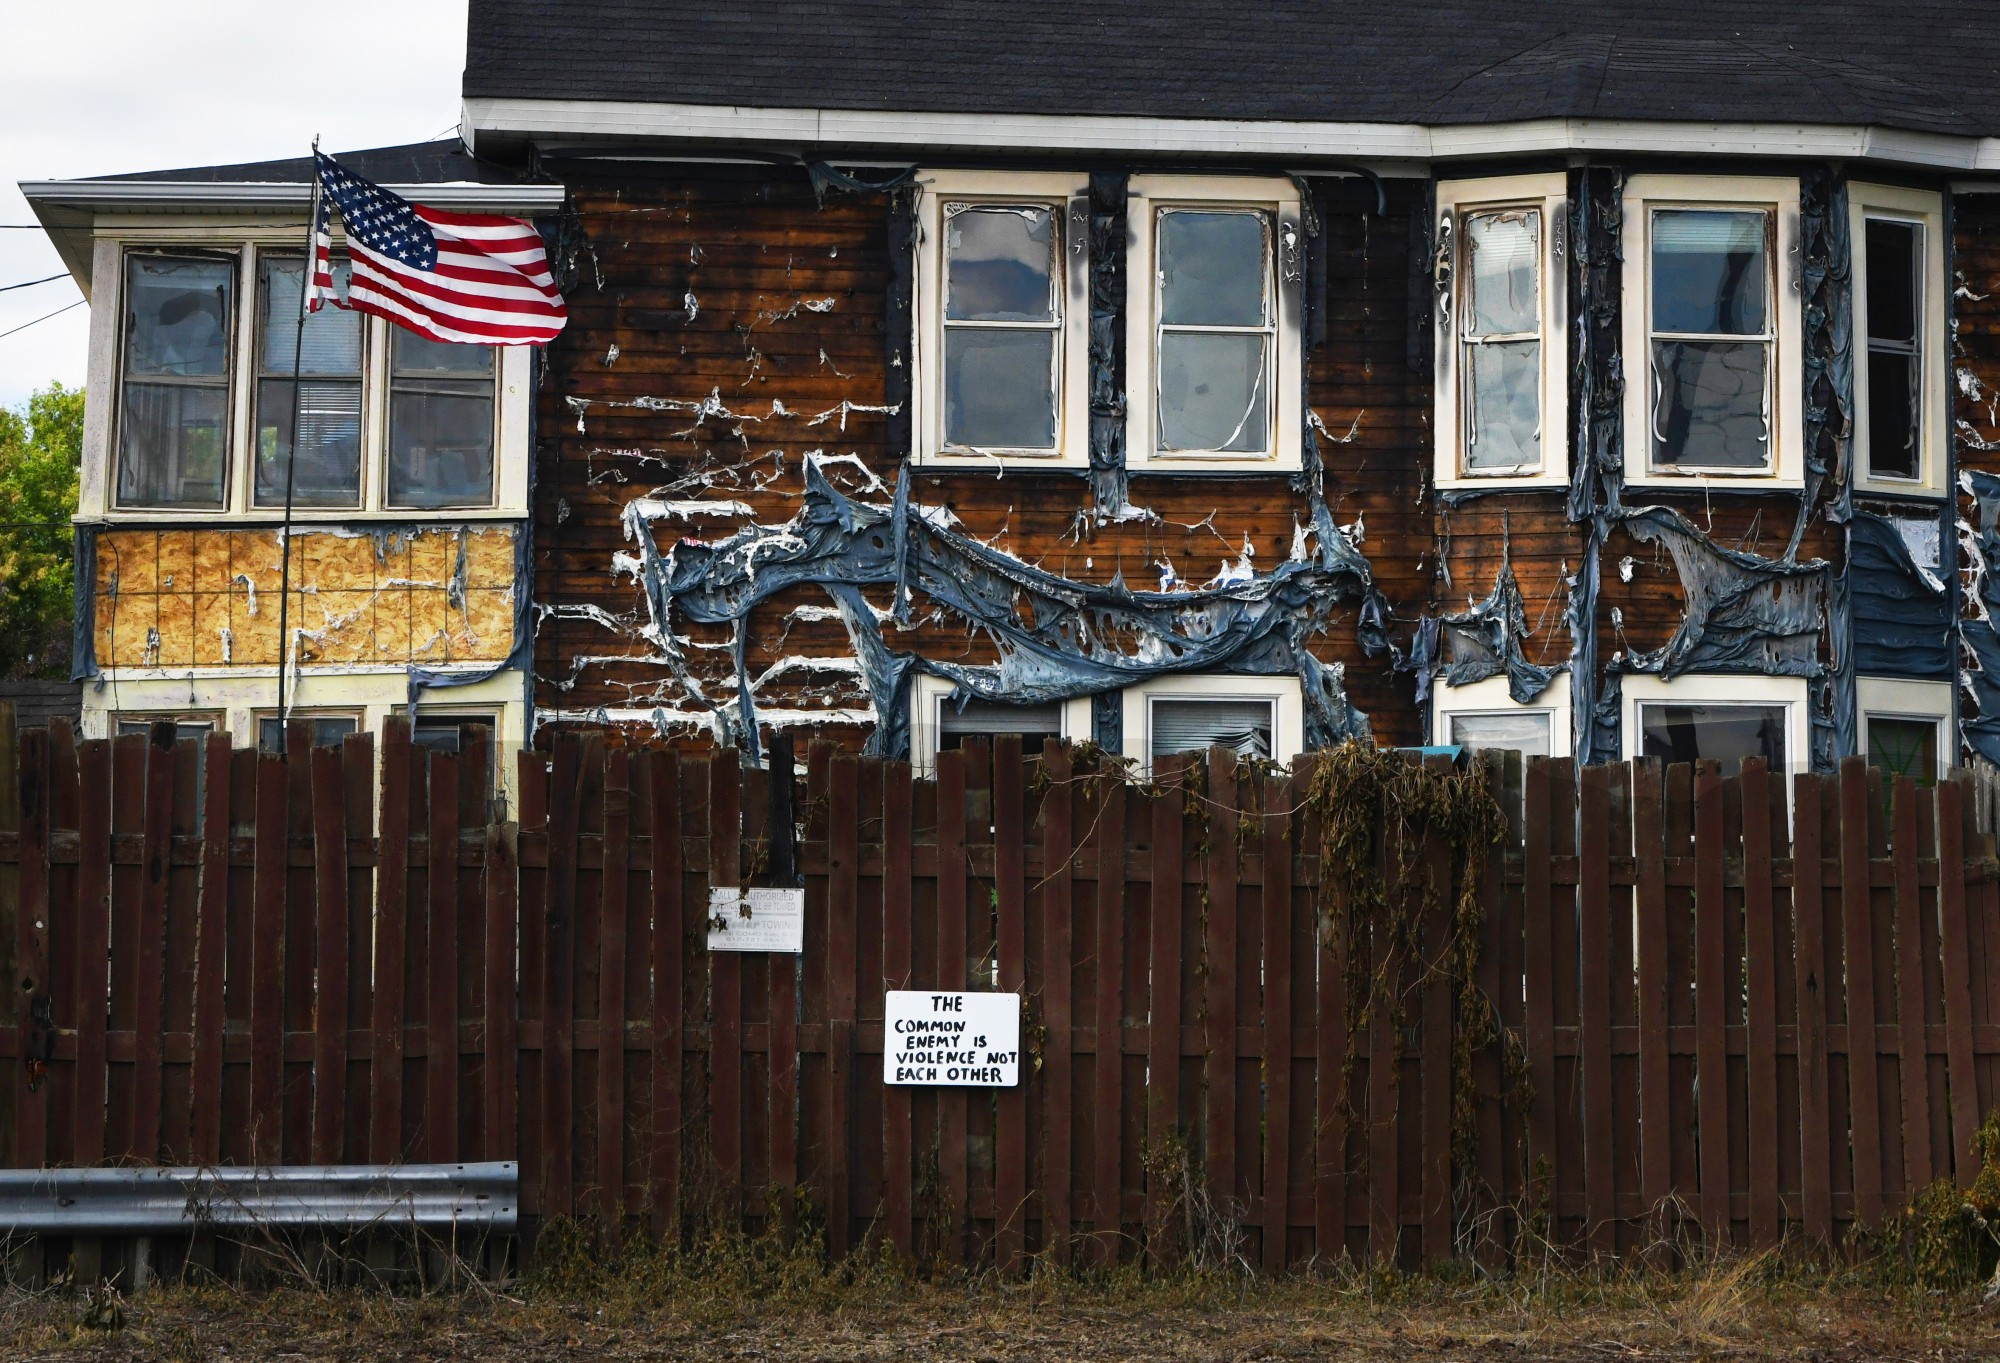 An American flag flies outside of a residence with melted siding along East 29th Street near the Minneapolis 3rd Police Precinct on Friday, May 29, while a sign on the exterior fence reads,